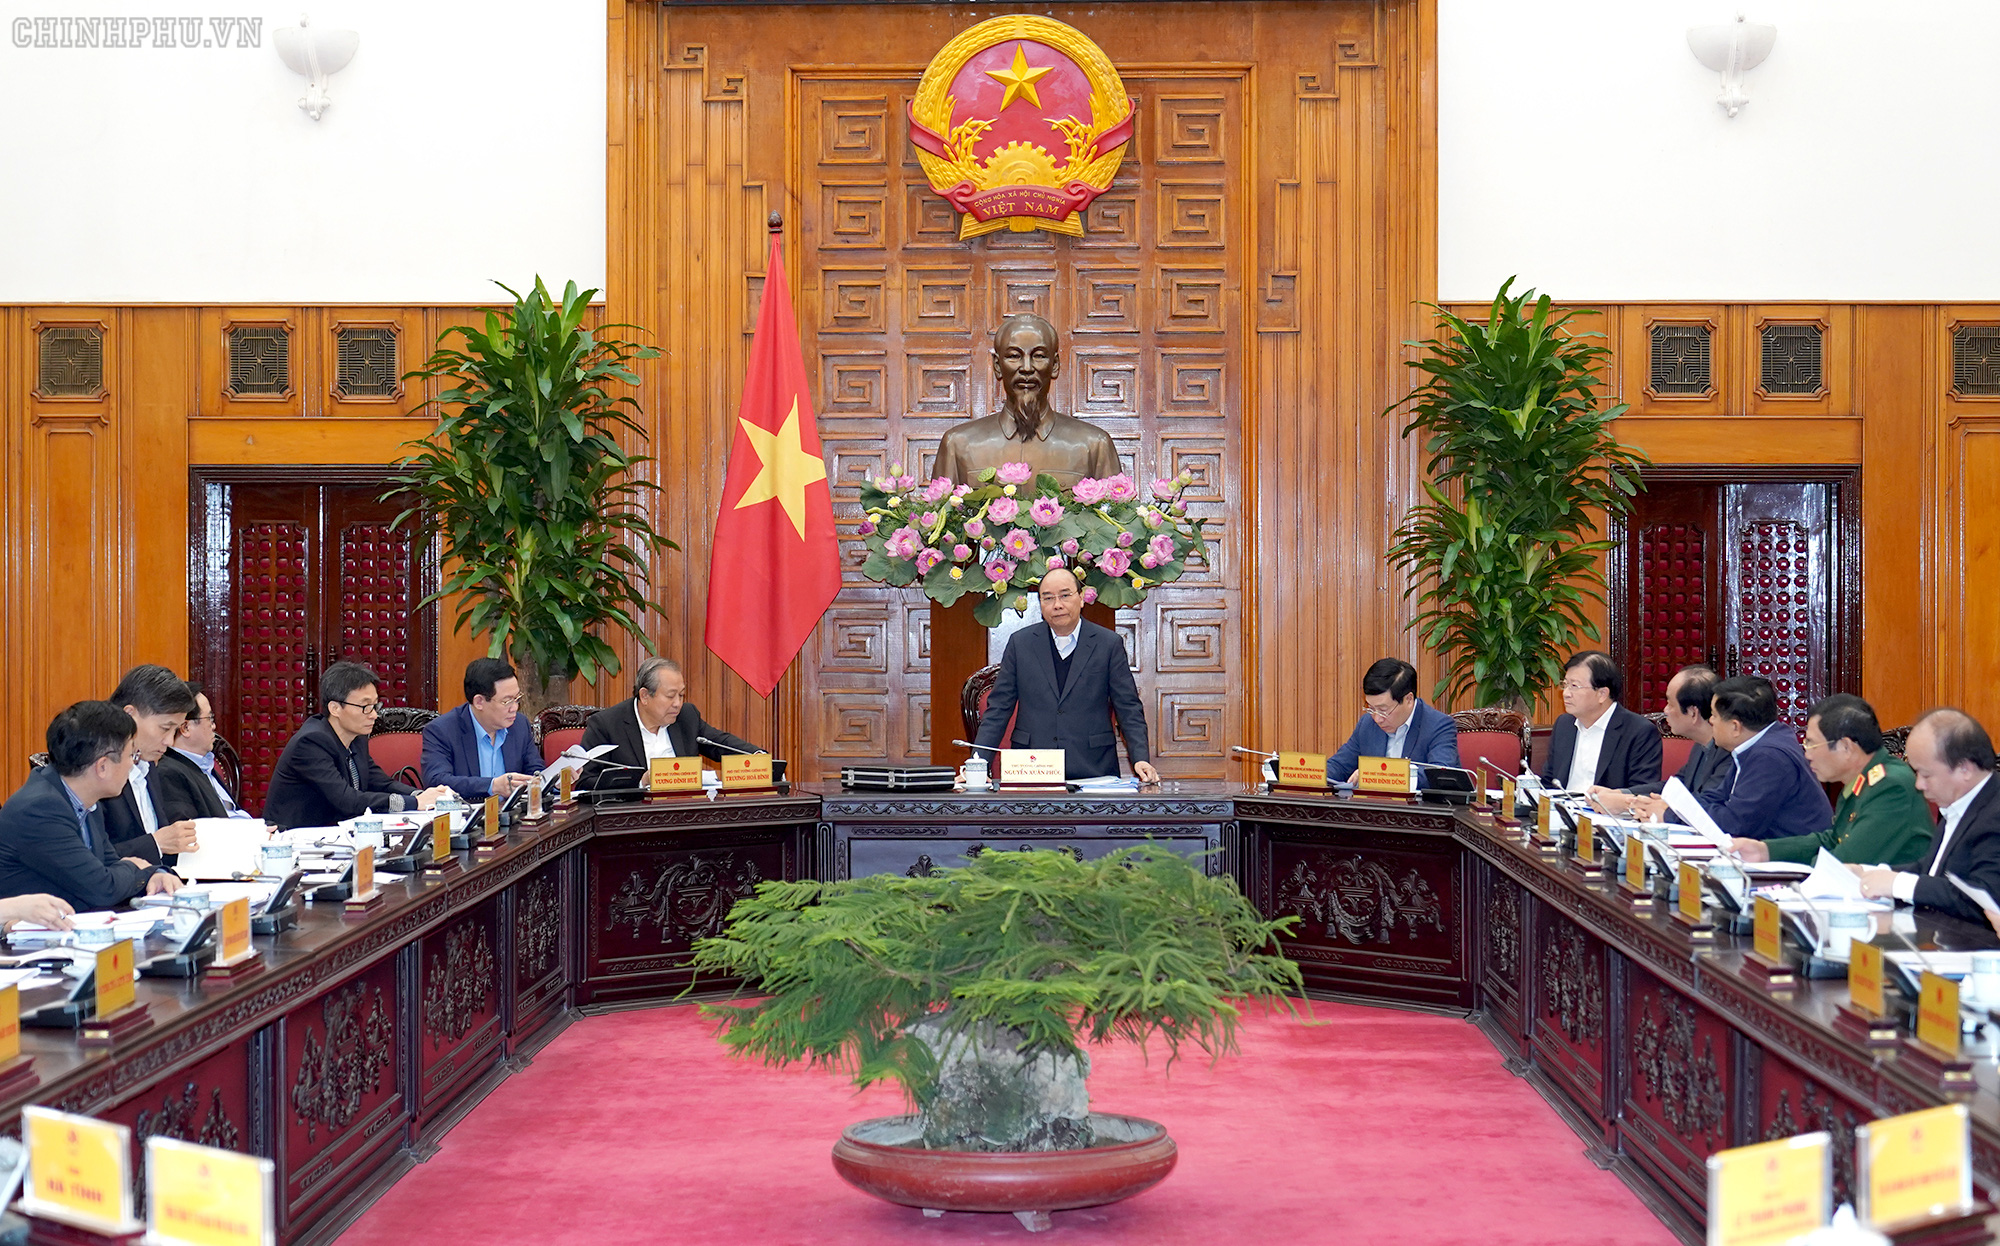 Vietnam to buy up to 5,000 megawatts of electricity from Laos in next decade